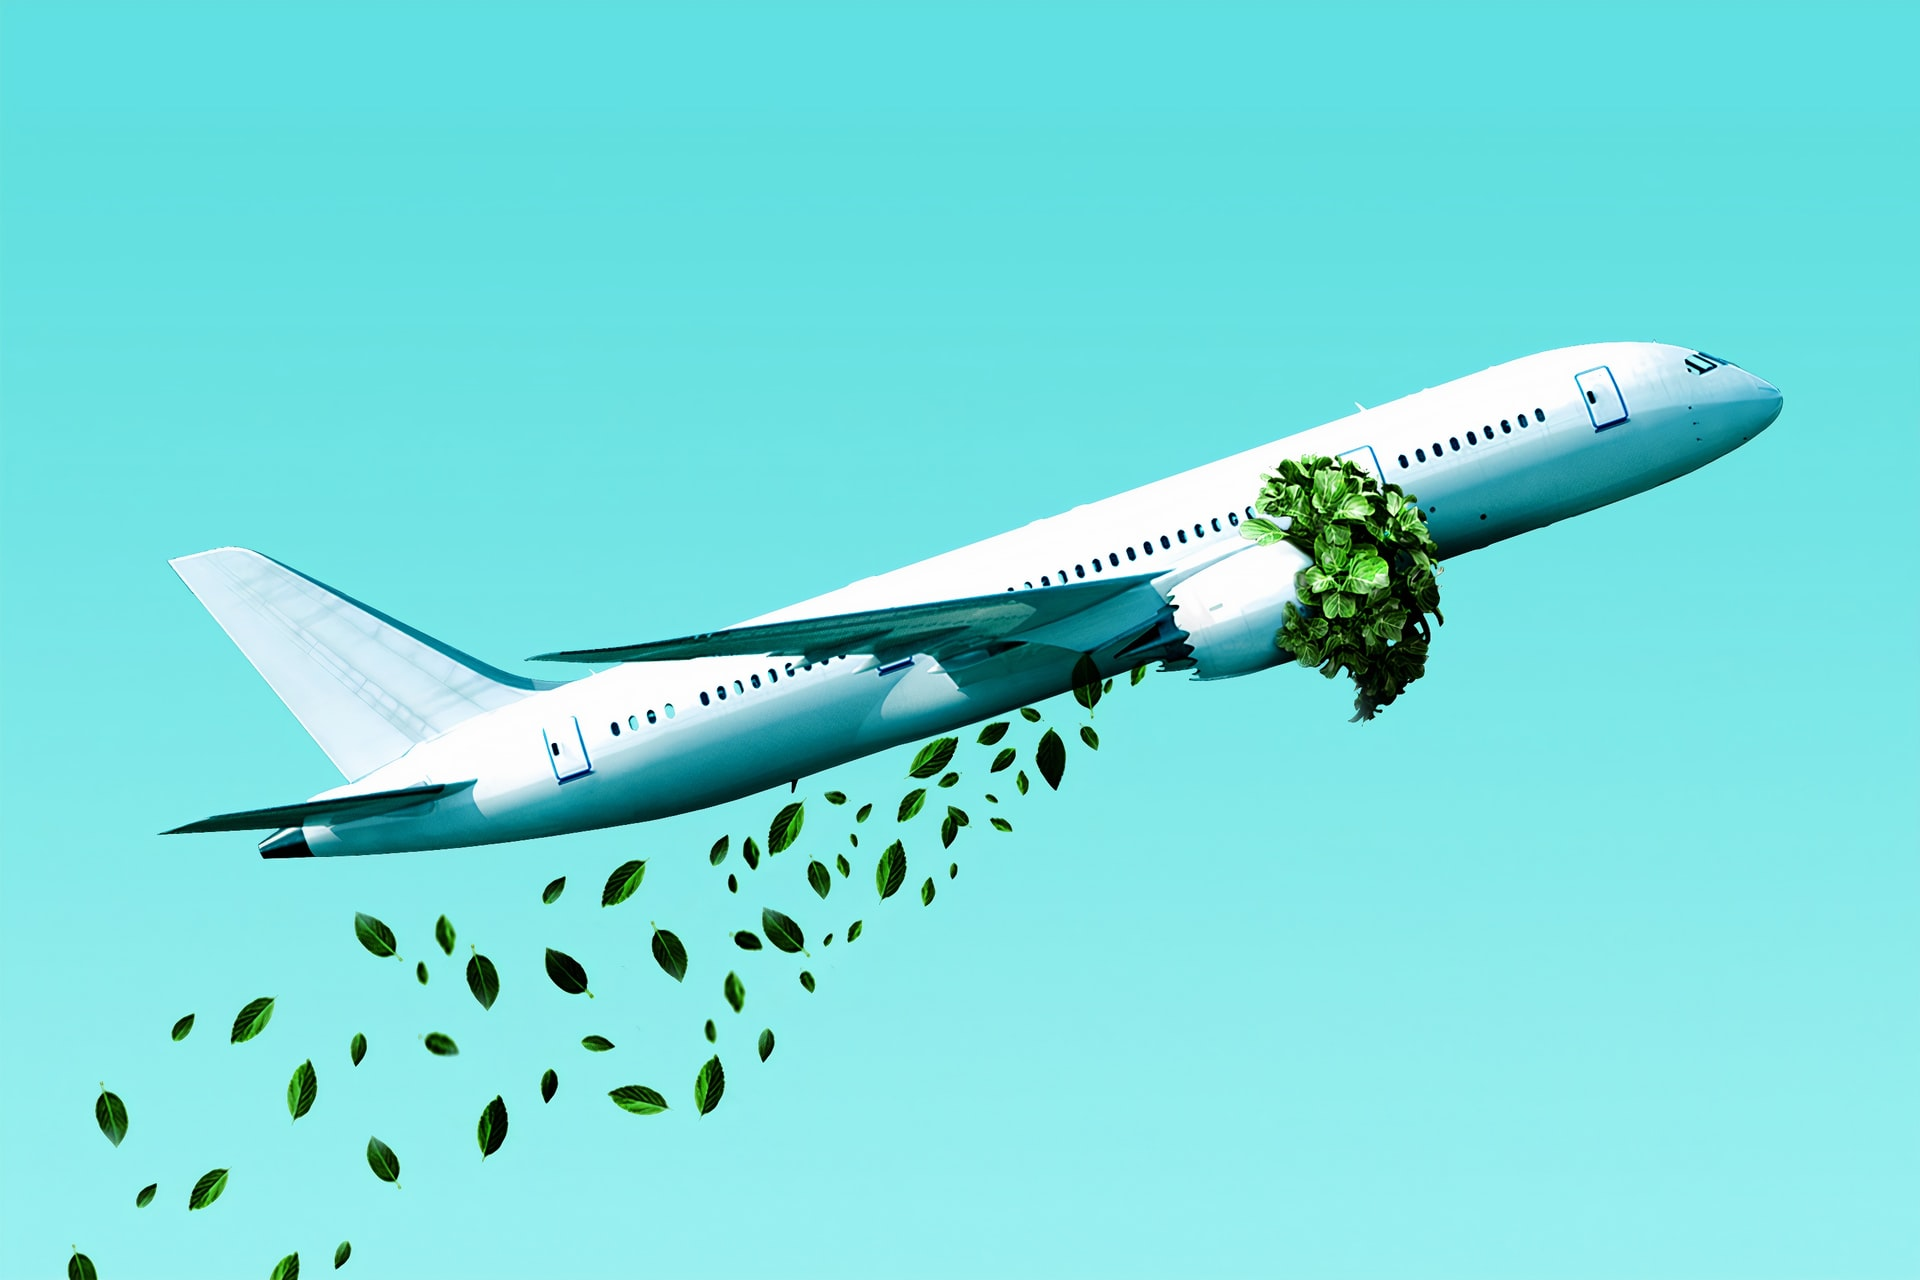 photoshopped aeroplane taking off with green leaves going in and out of the engine